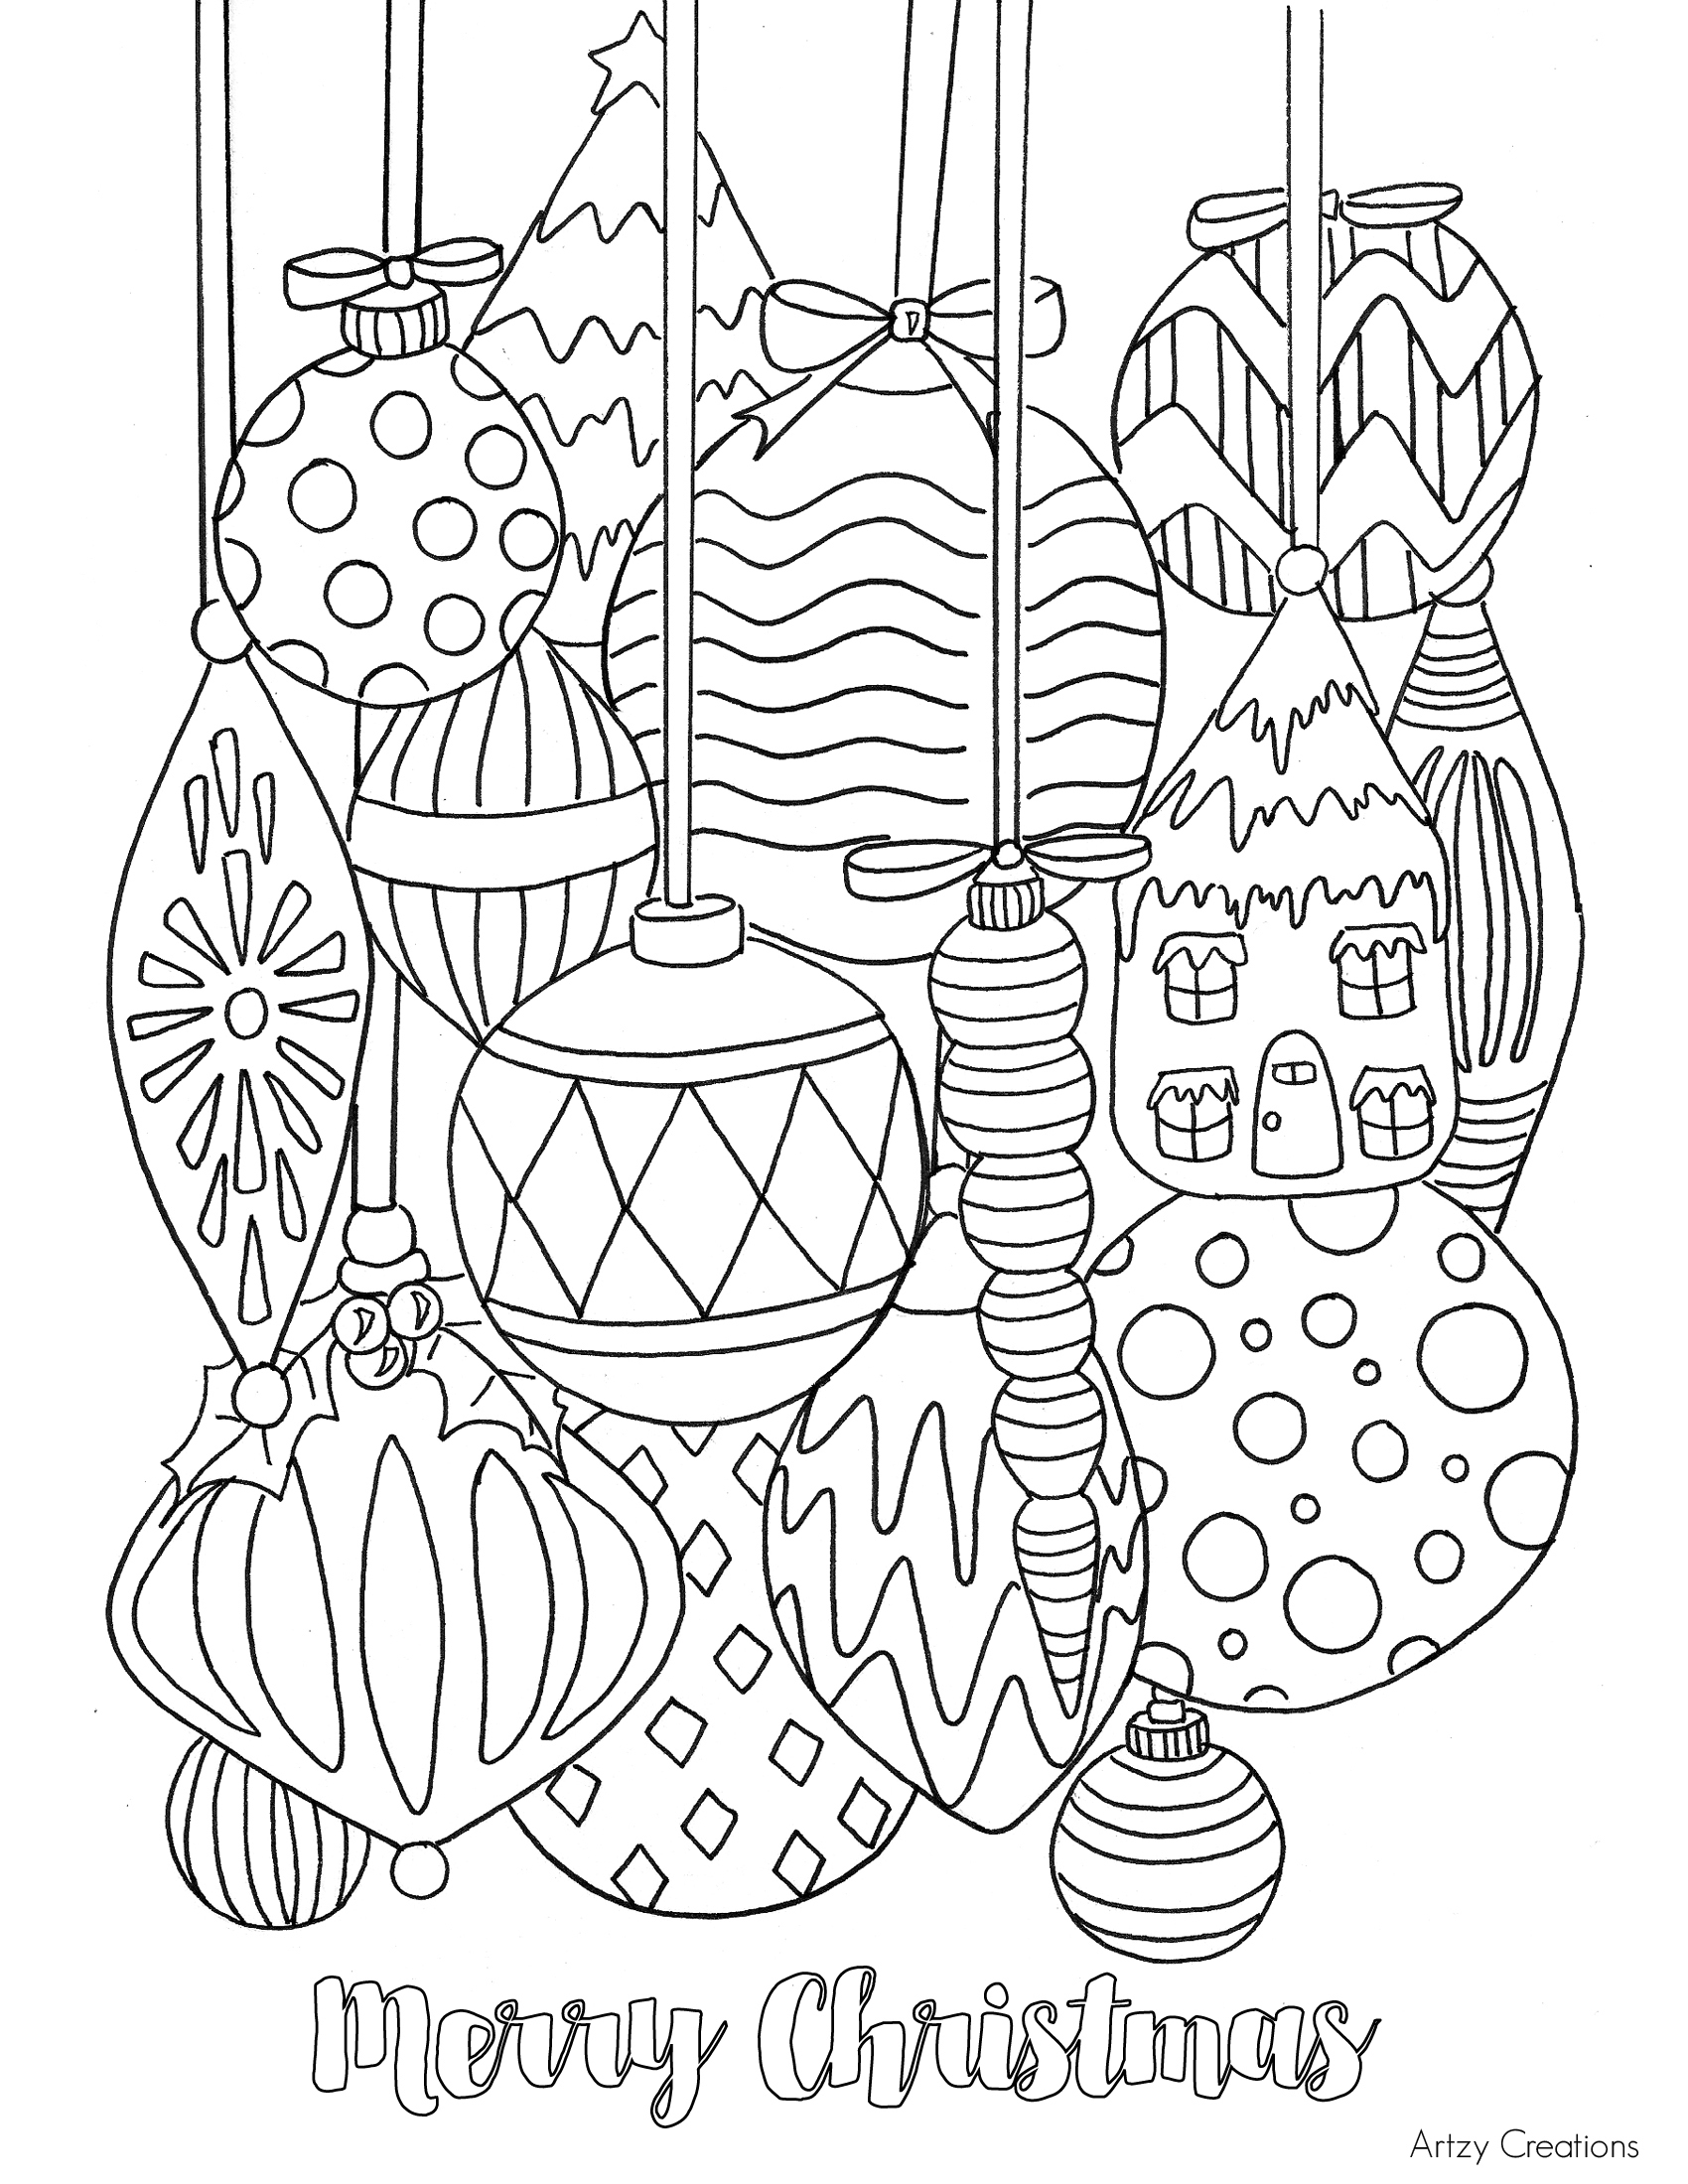 Coloring Pages : Free Christmas Ornament Coloringage Tgif This - Free Printable Christmas Ornament Coloring Pages